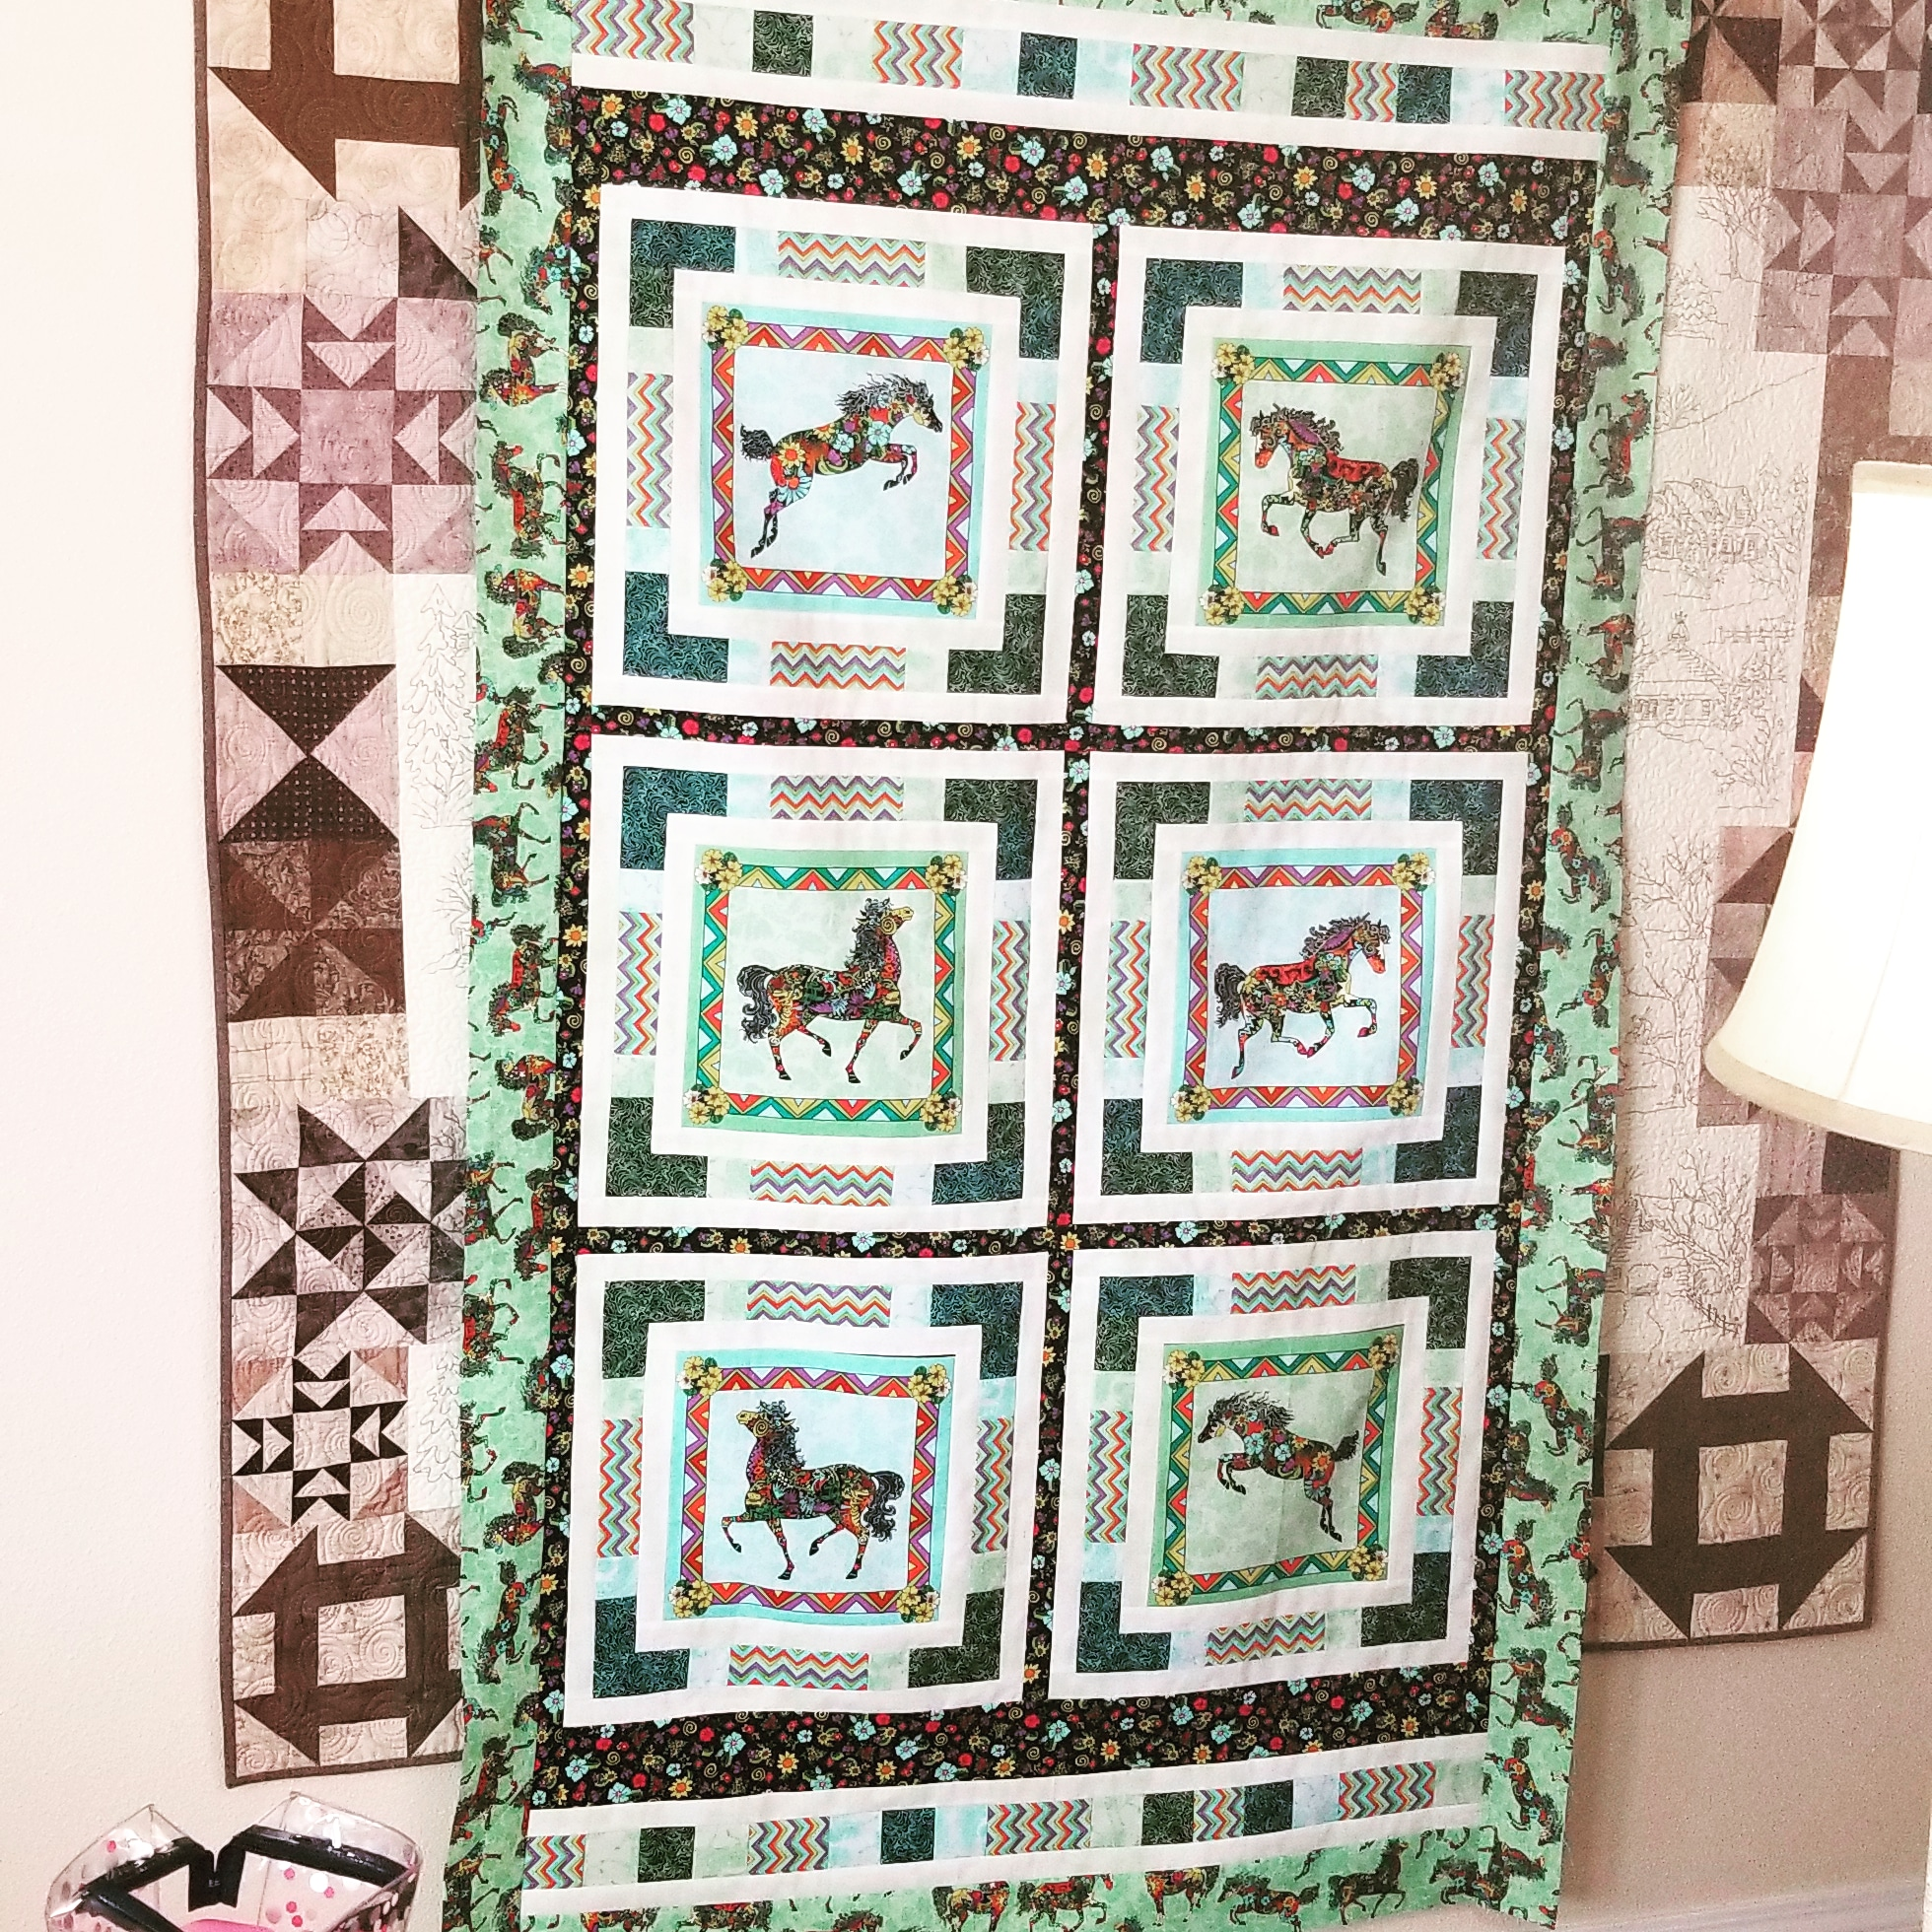 Mom's new quilt. This photo is a little washed out.